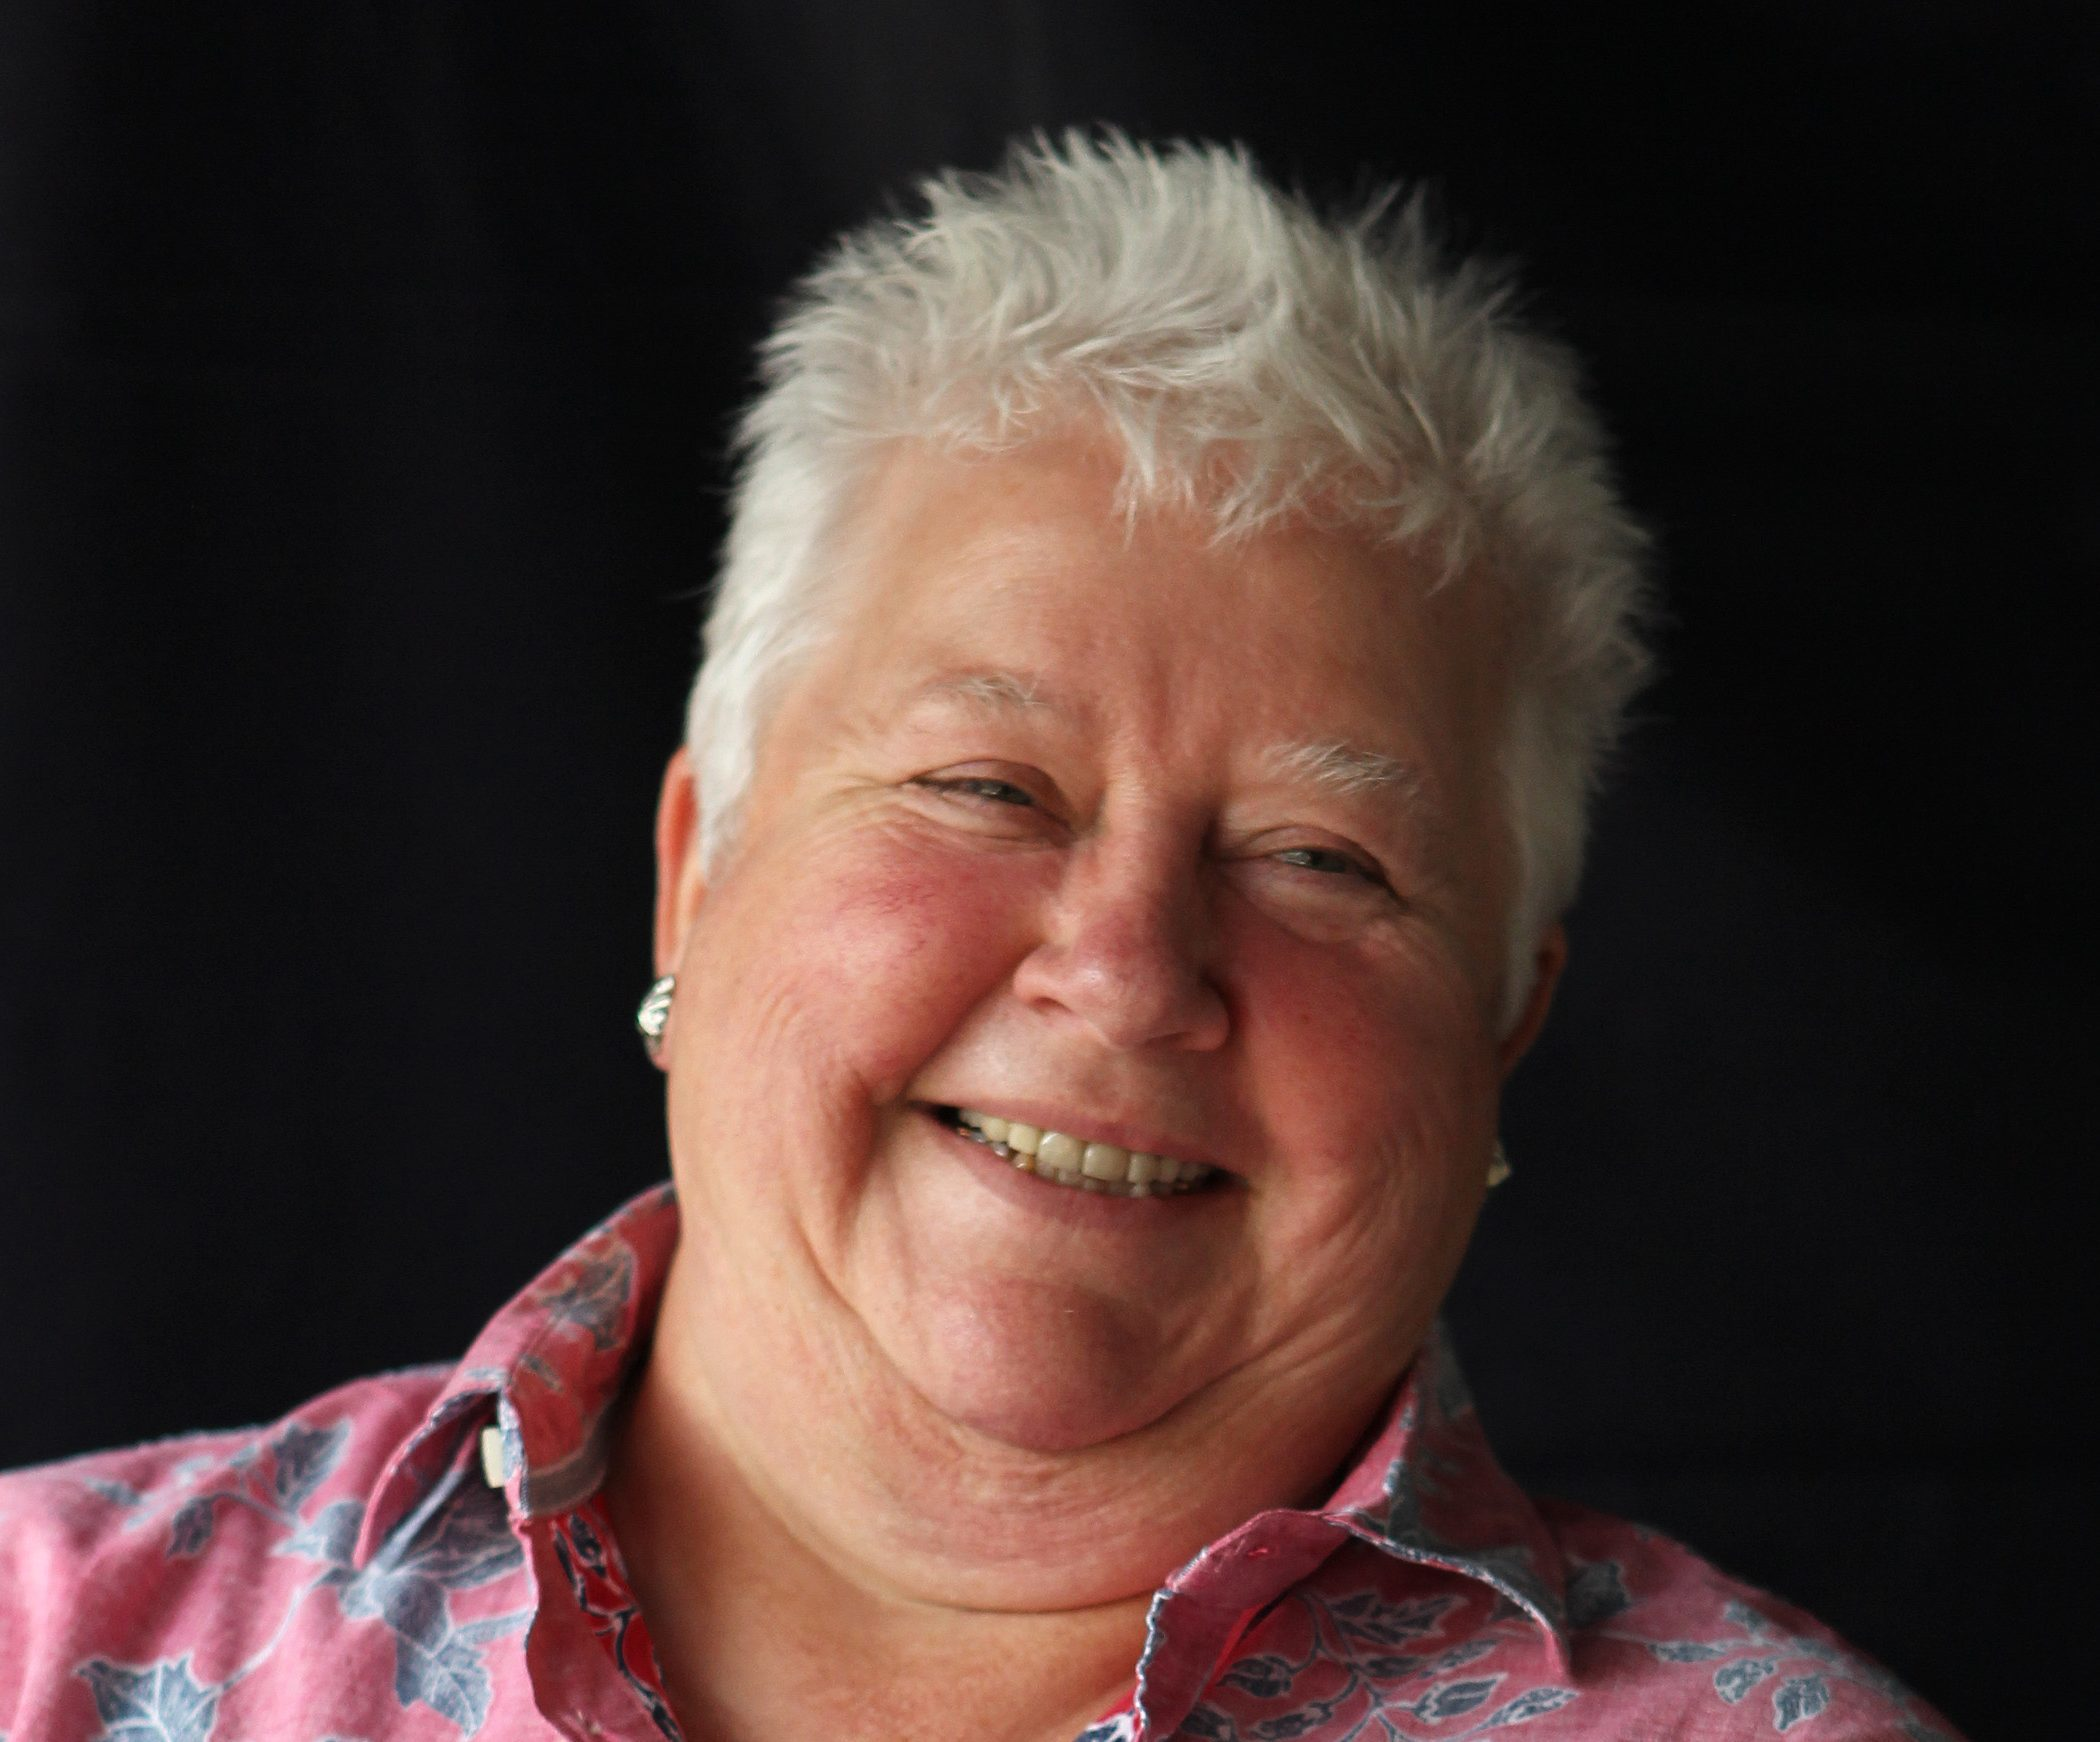 Scottish author Val McDermid will take part in the event (B Marshall, DCT Photographers)